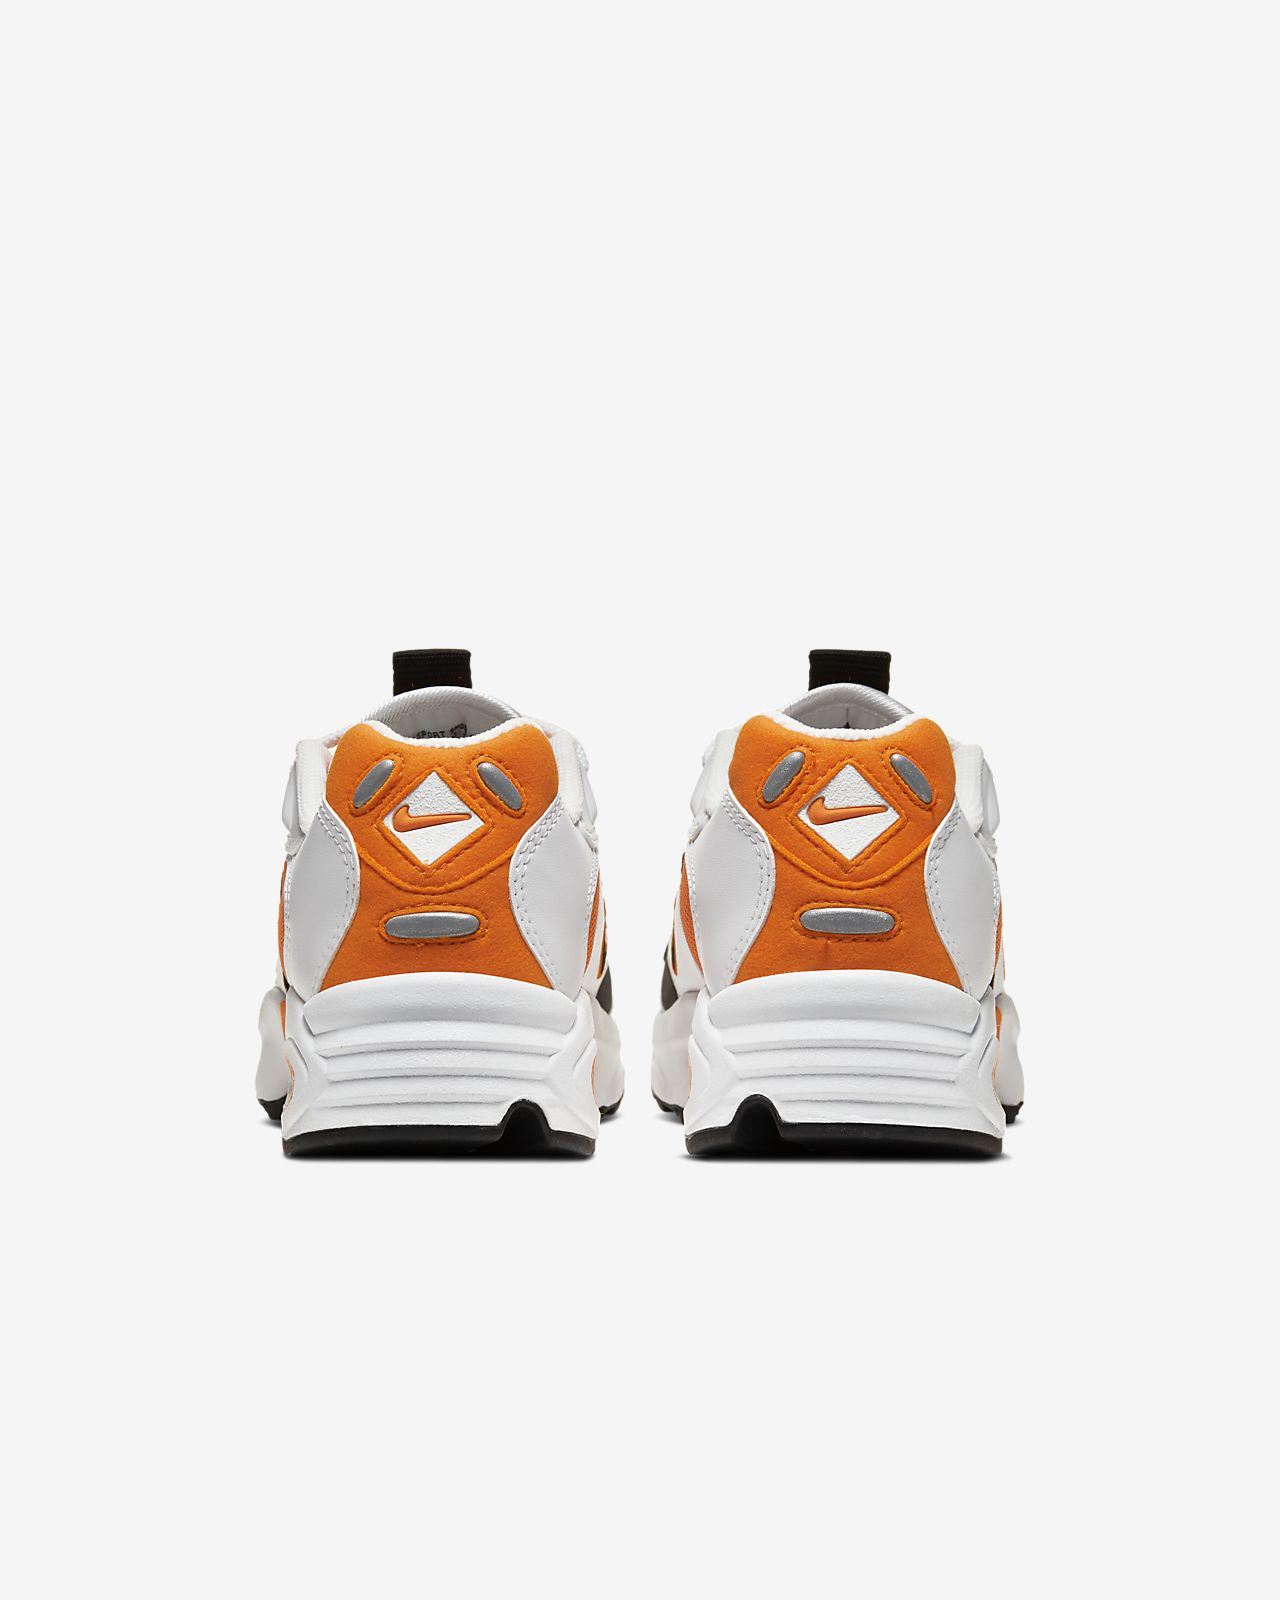 Details about NIKE AIR MAX 270 LADIES WHITE PINK YELLOW TRAINERS VARIOUS SIZES RRP £130 LG